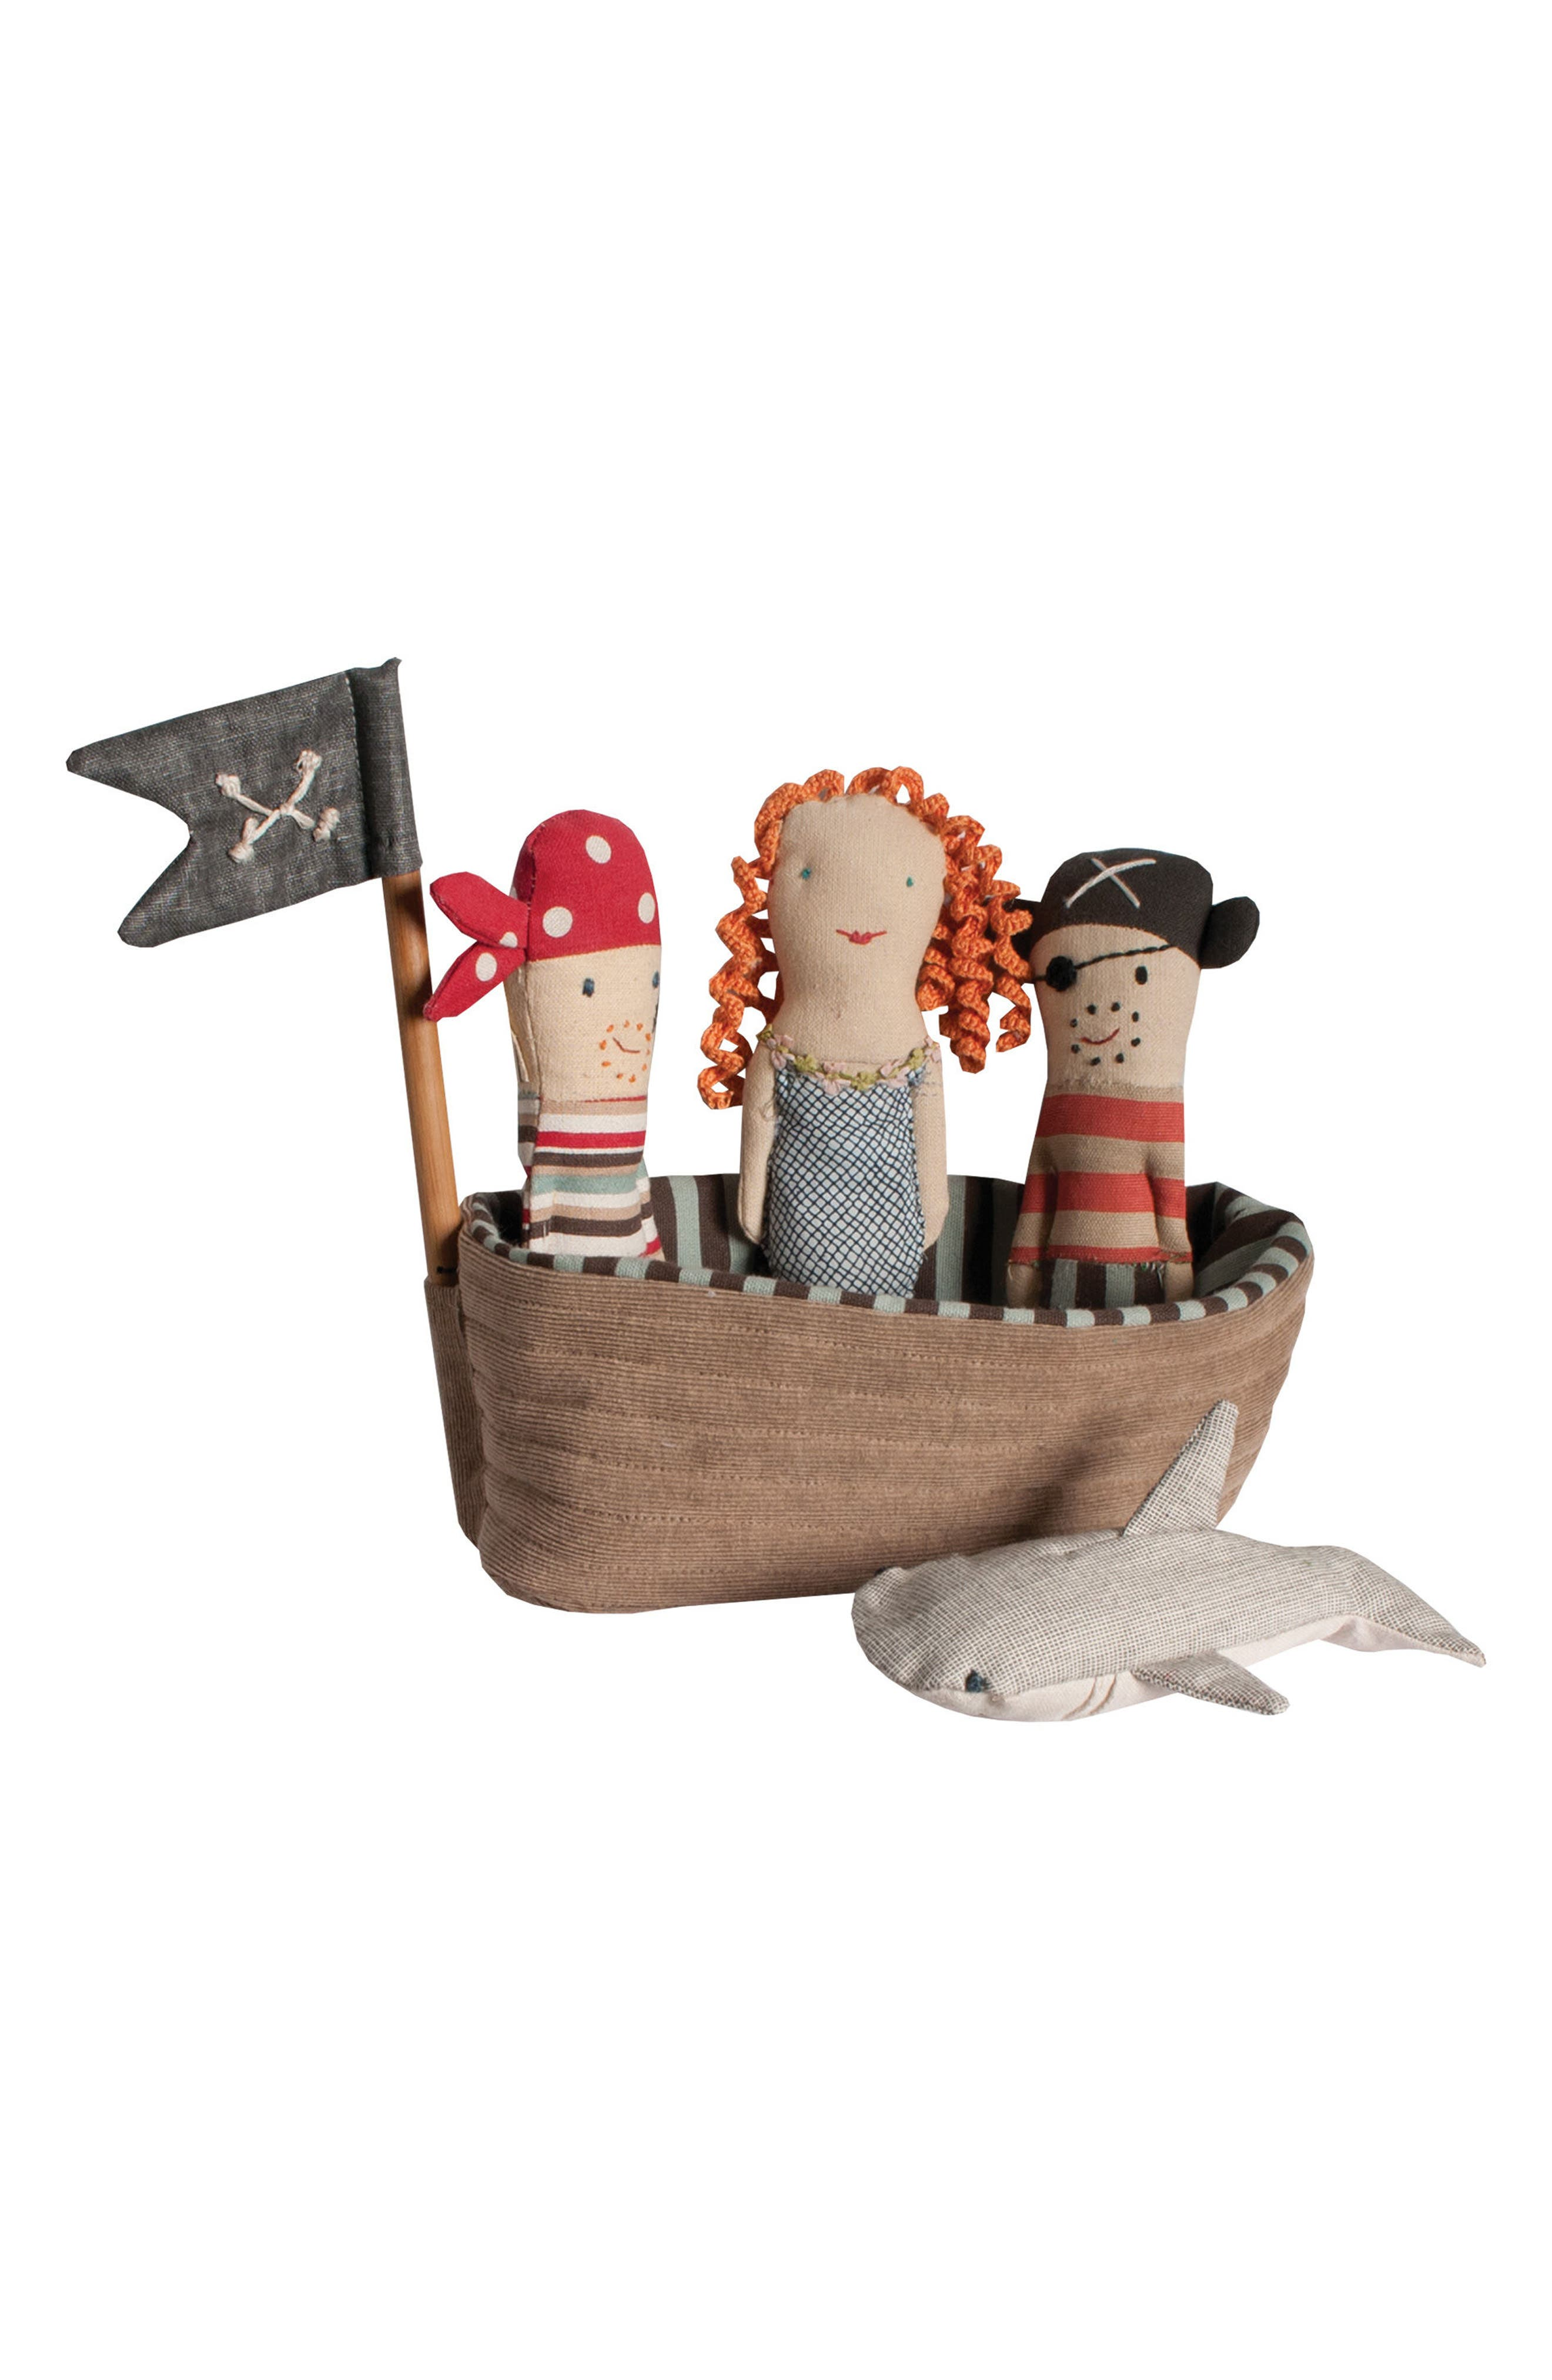 Pirate Ship Rattle 5-Piece Play Set,                         Main,                         color, 200